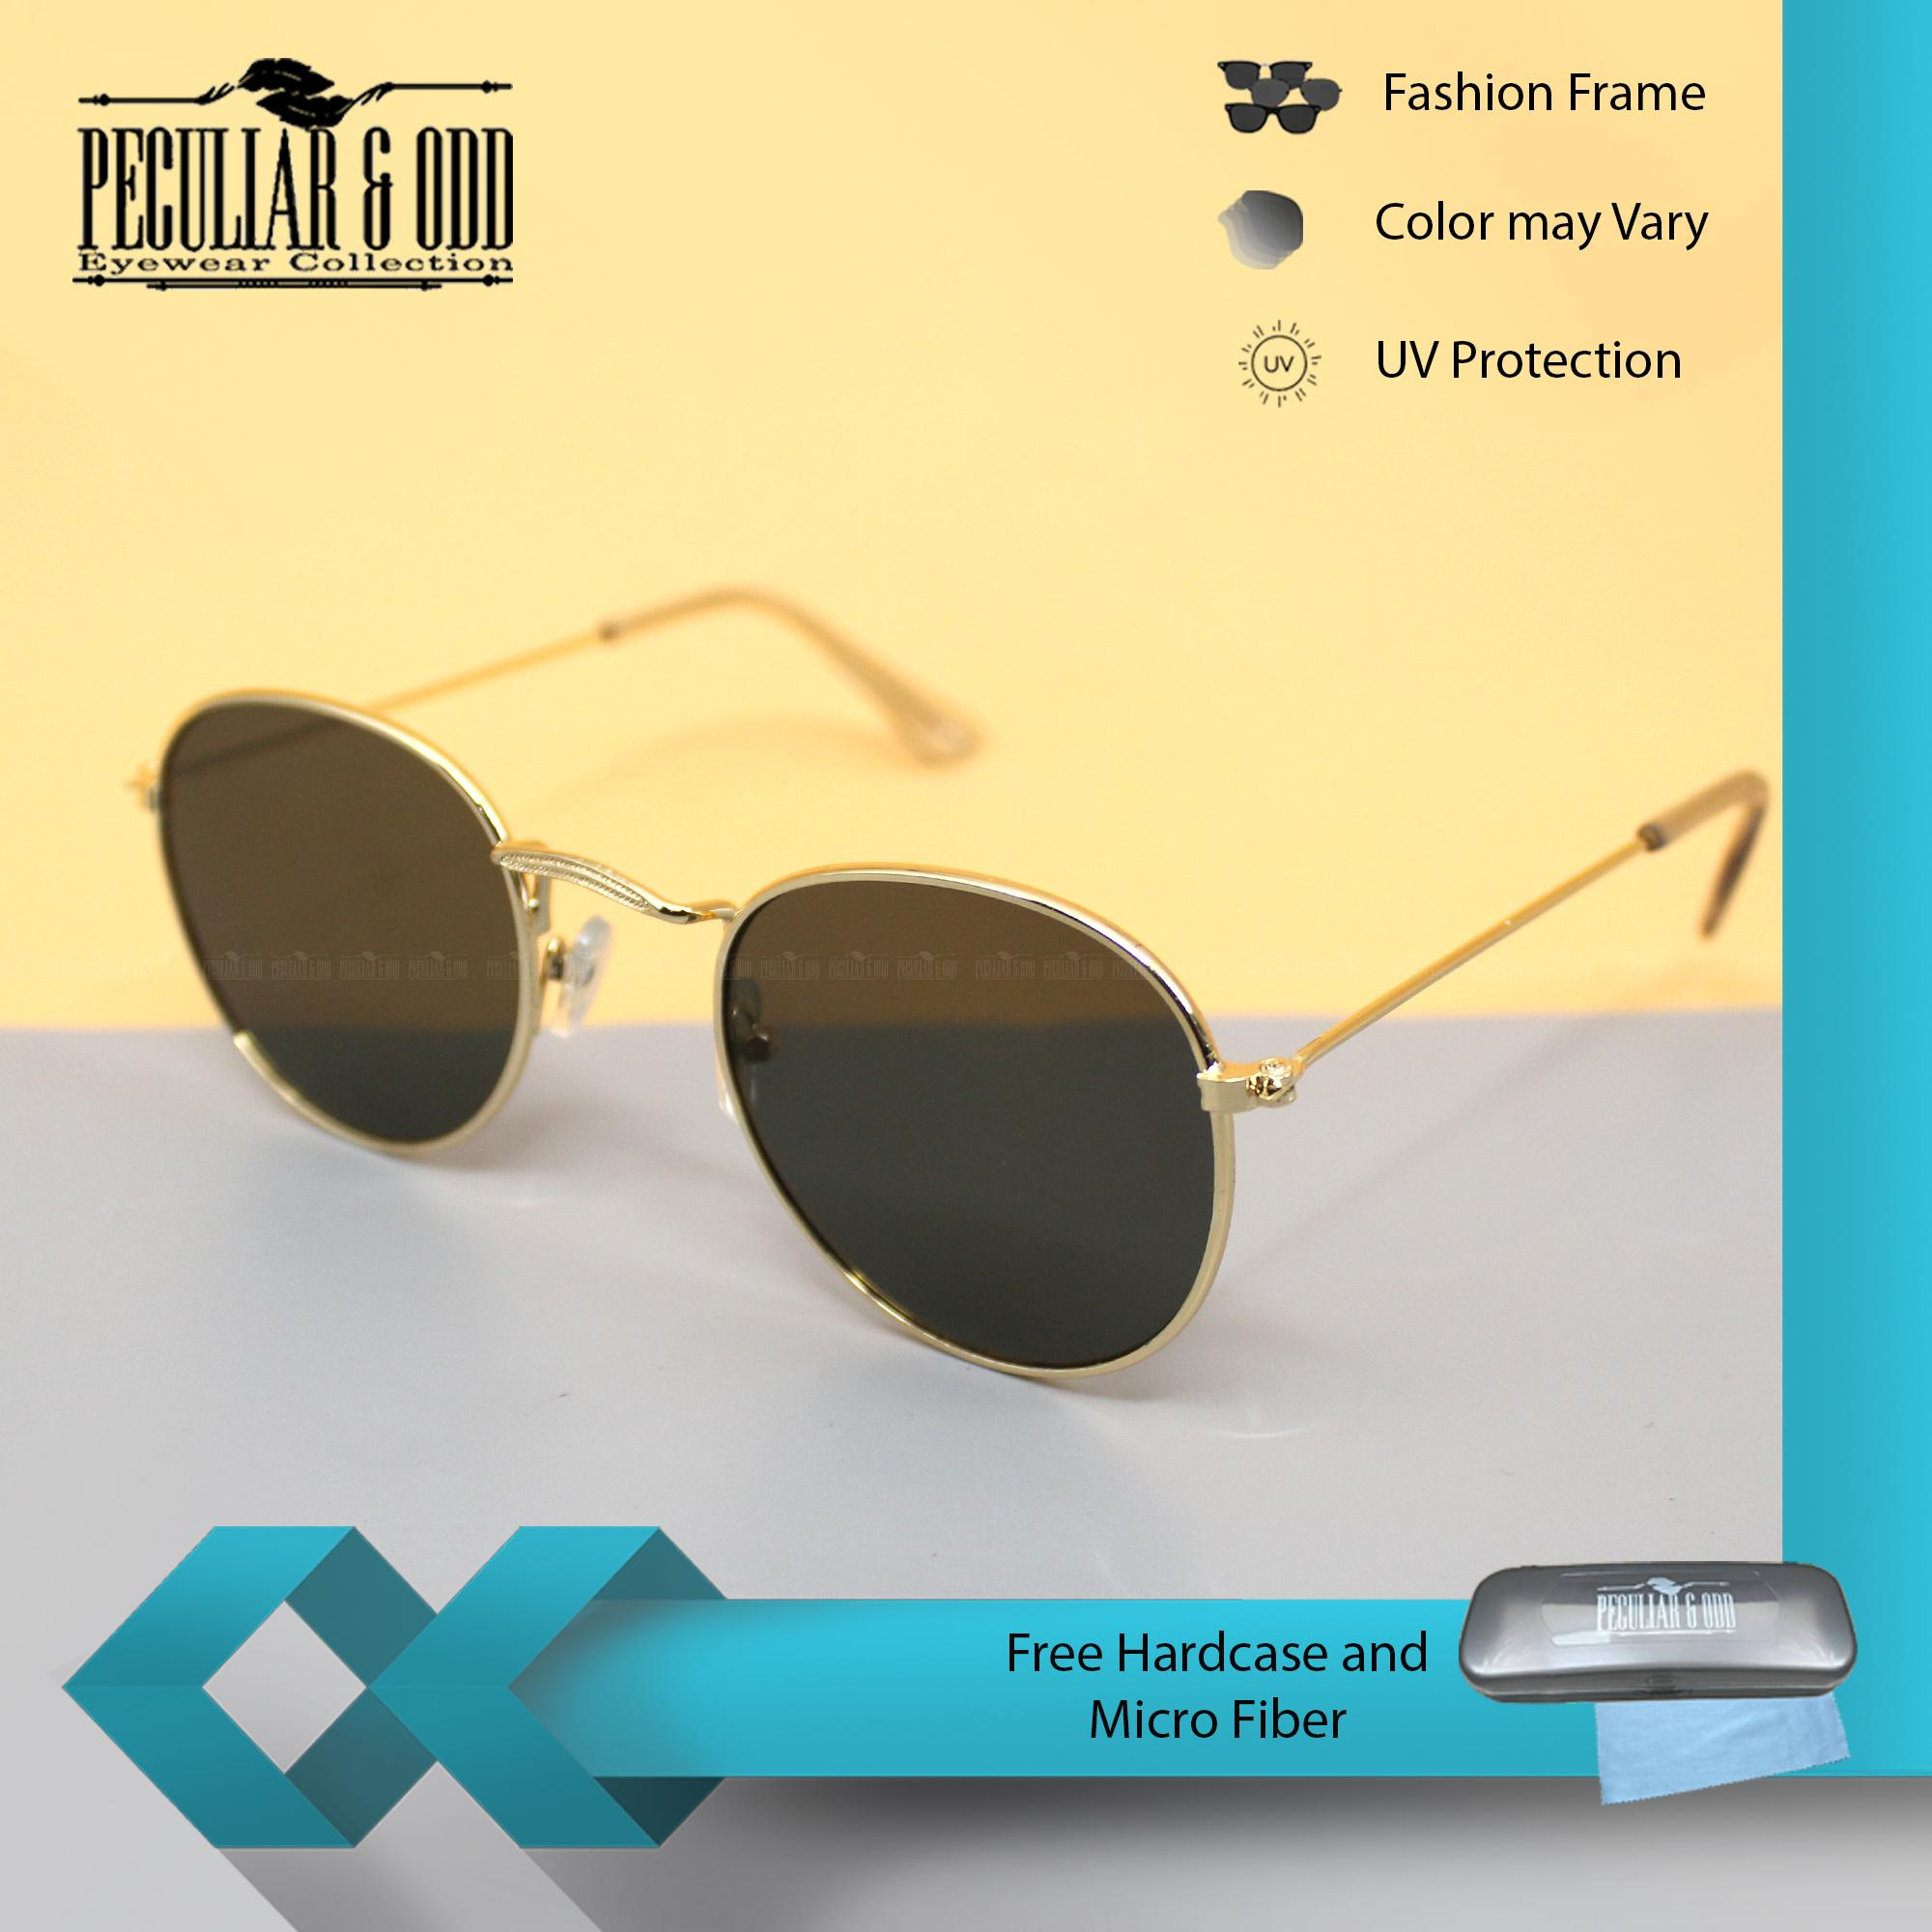 96a5fdb56b Peculiar Round 3447 GoldBrown in Gold Frame and Brown Flash Lens Sunglasses  in Lightweight Metallic Frame Unisex